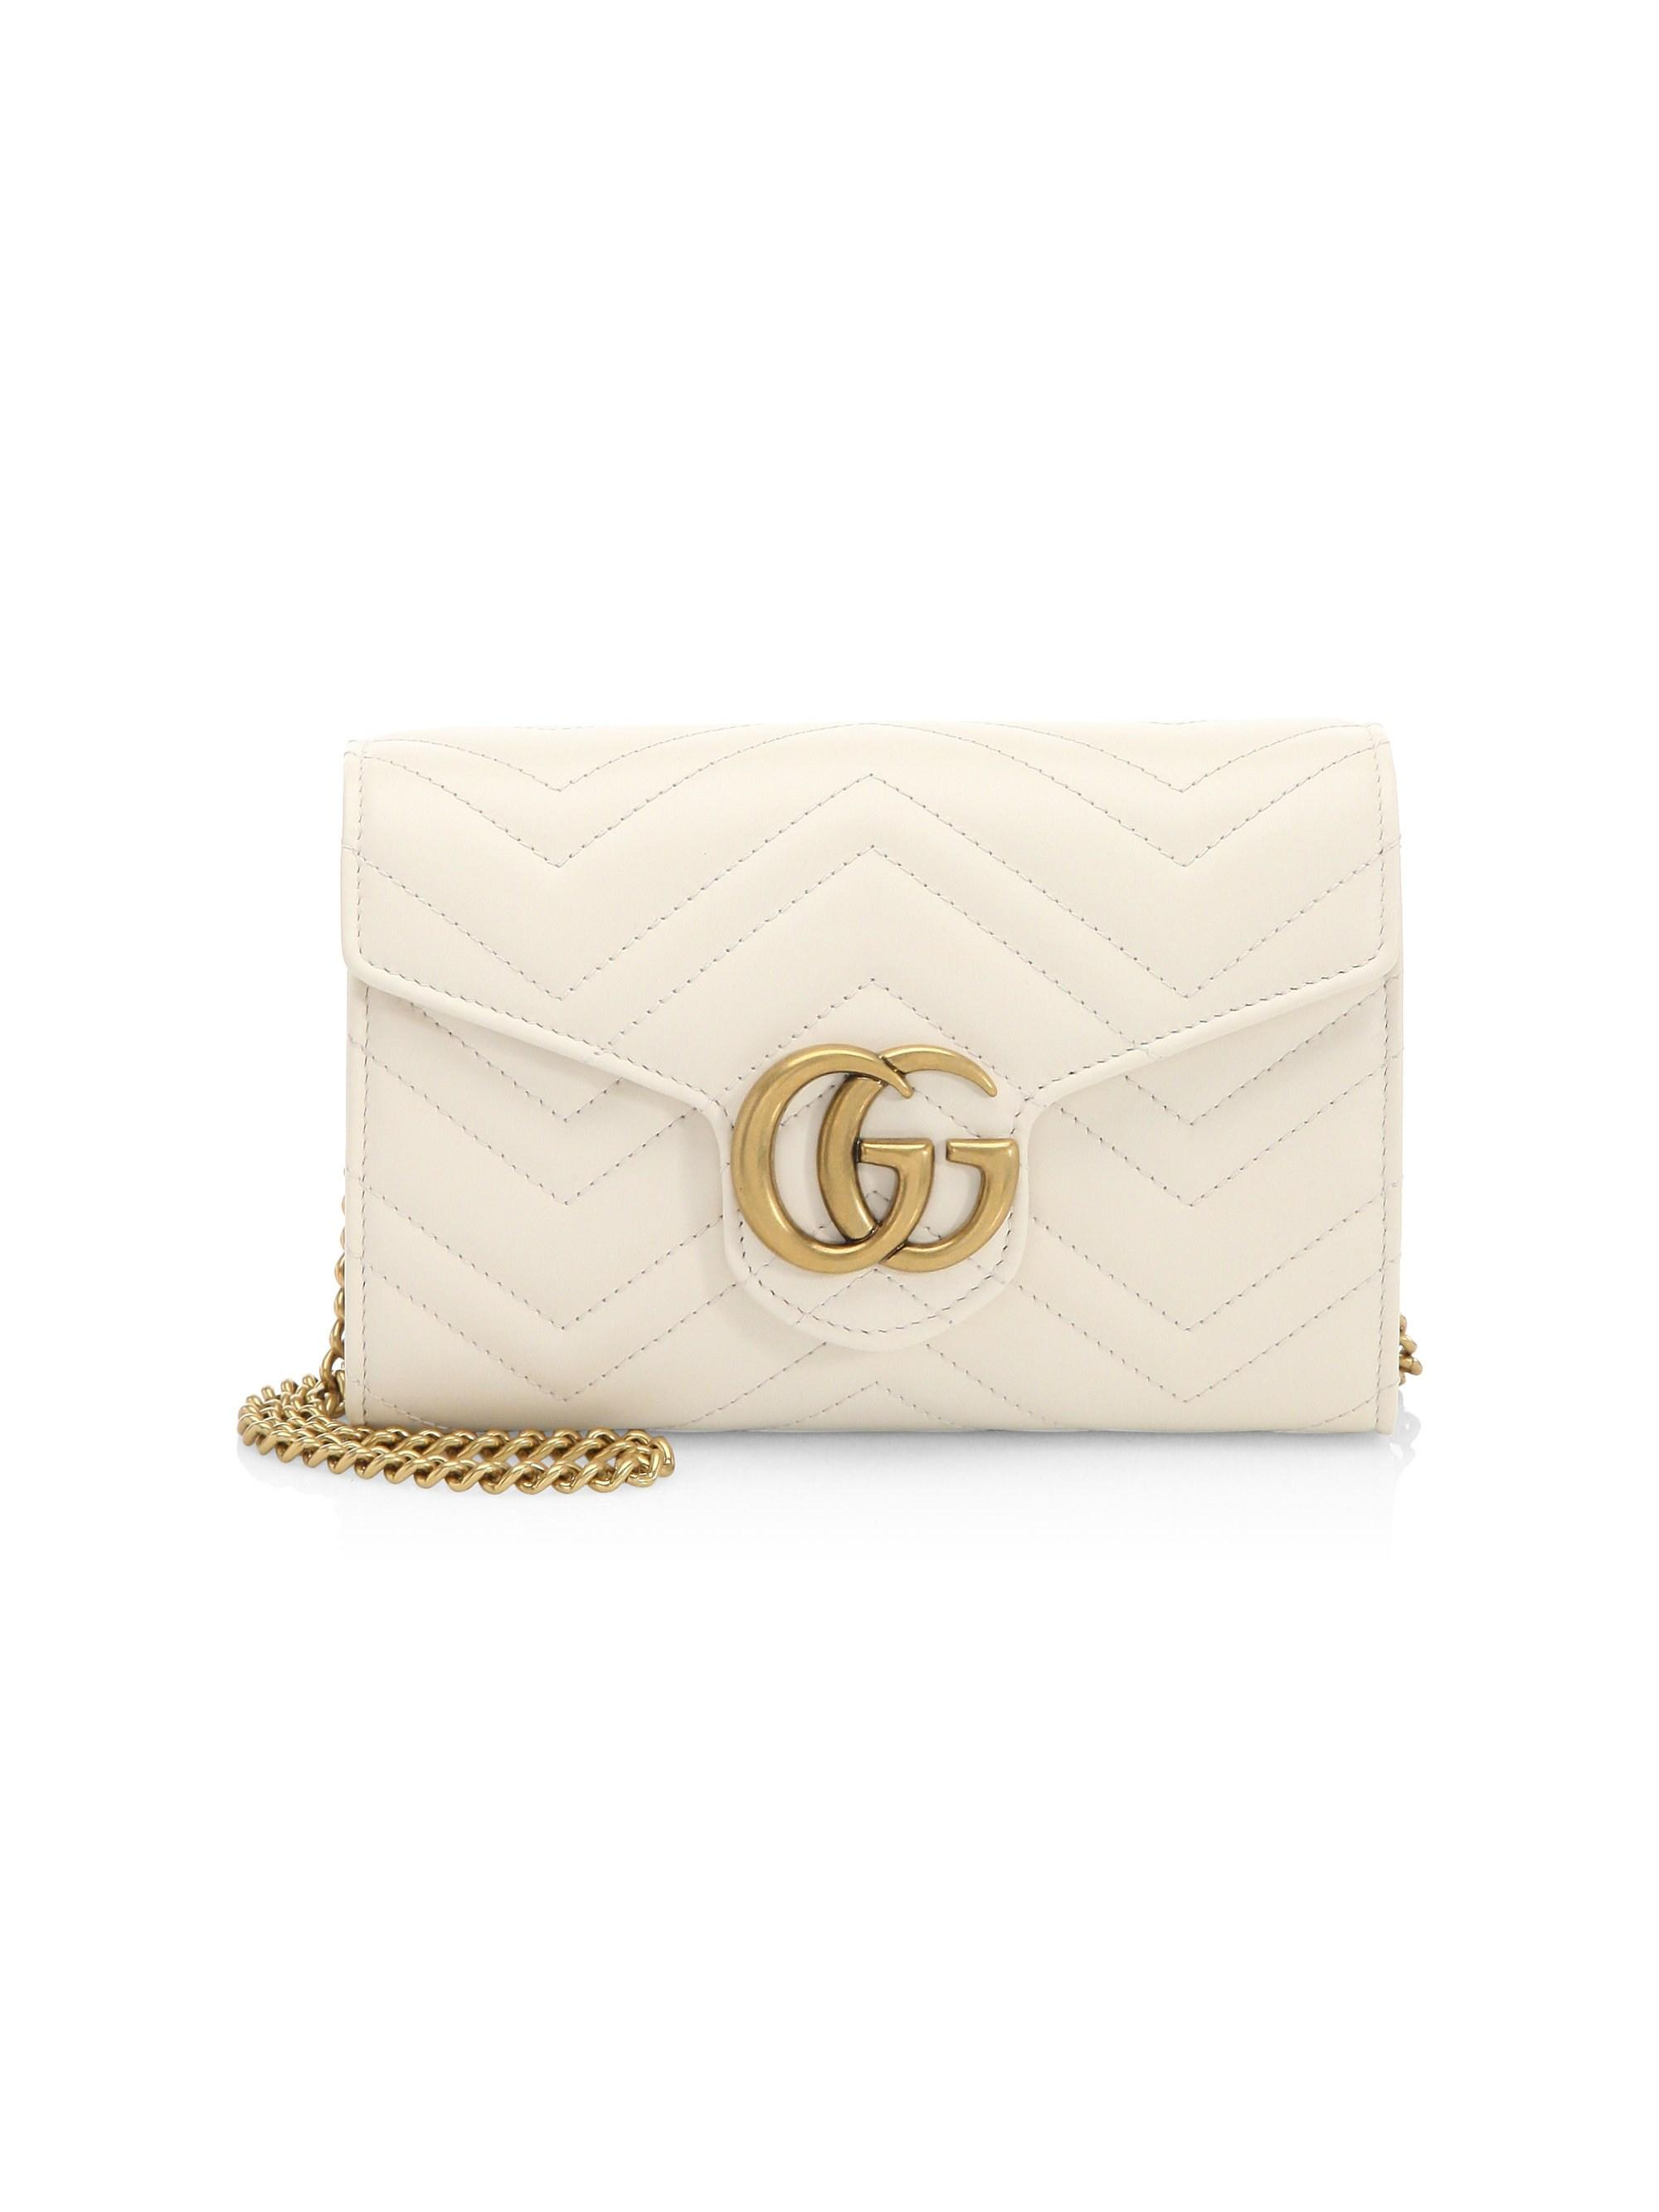 94c9730fd224 Gucci. White Women's GG Marmont Leather Mini Bag - Black. $1,450 From Saks  Fifth Avenue